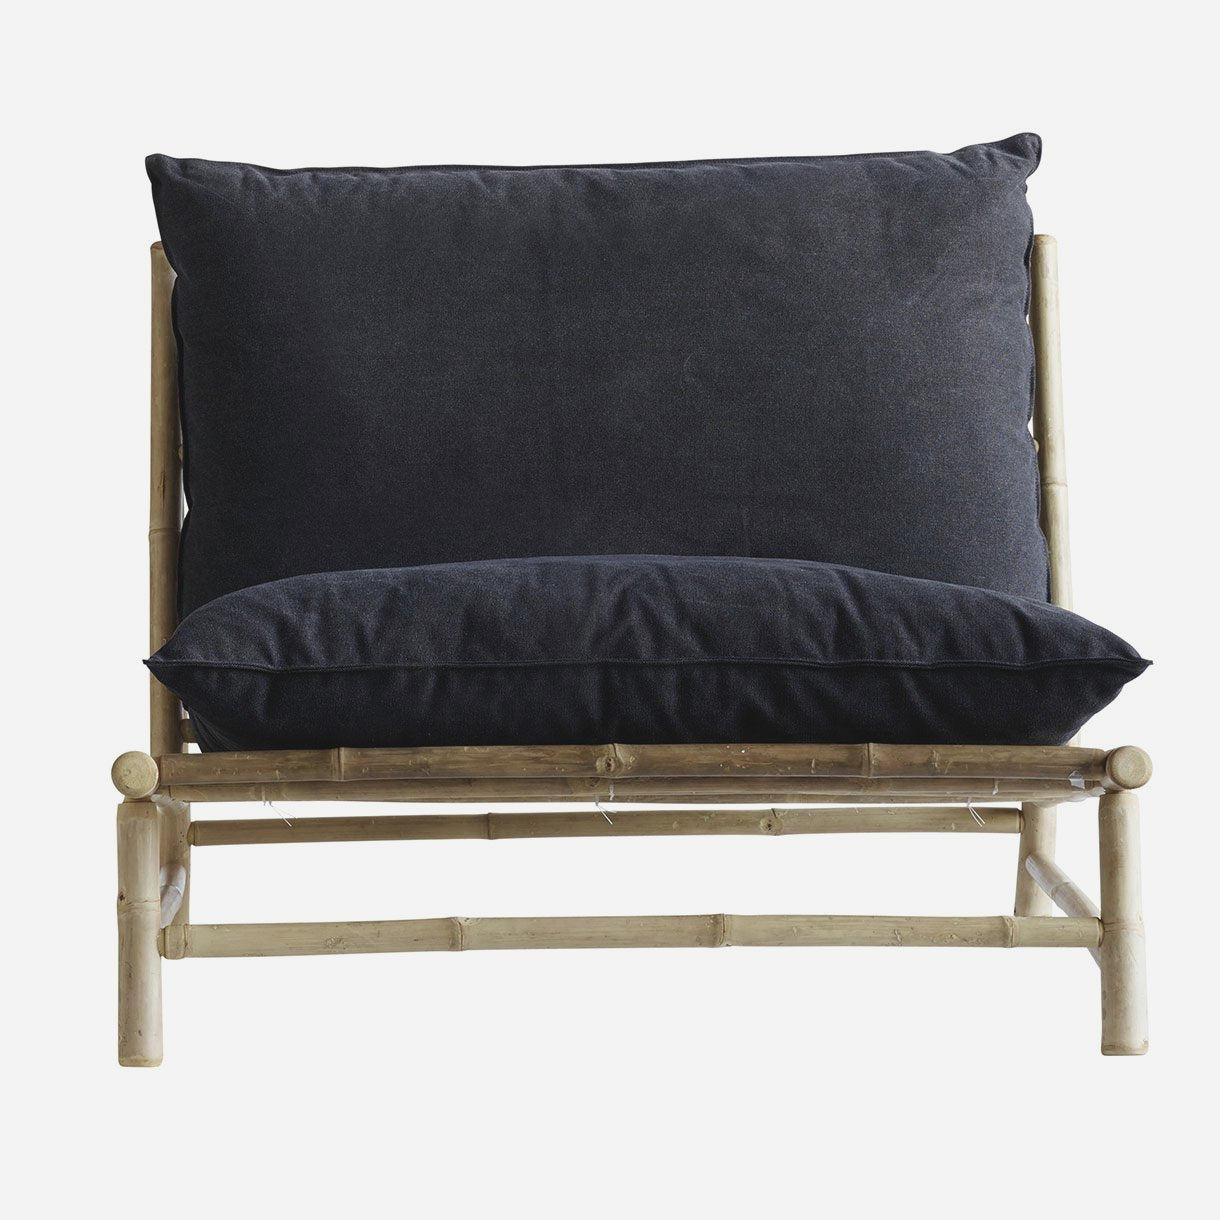 Bamboo lounge stol m. pude w100x87xh45/80cm fra tine k. home fra nordlyhome.dk